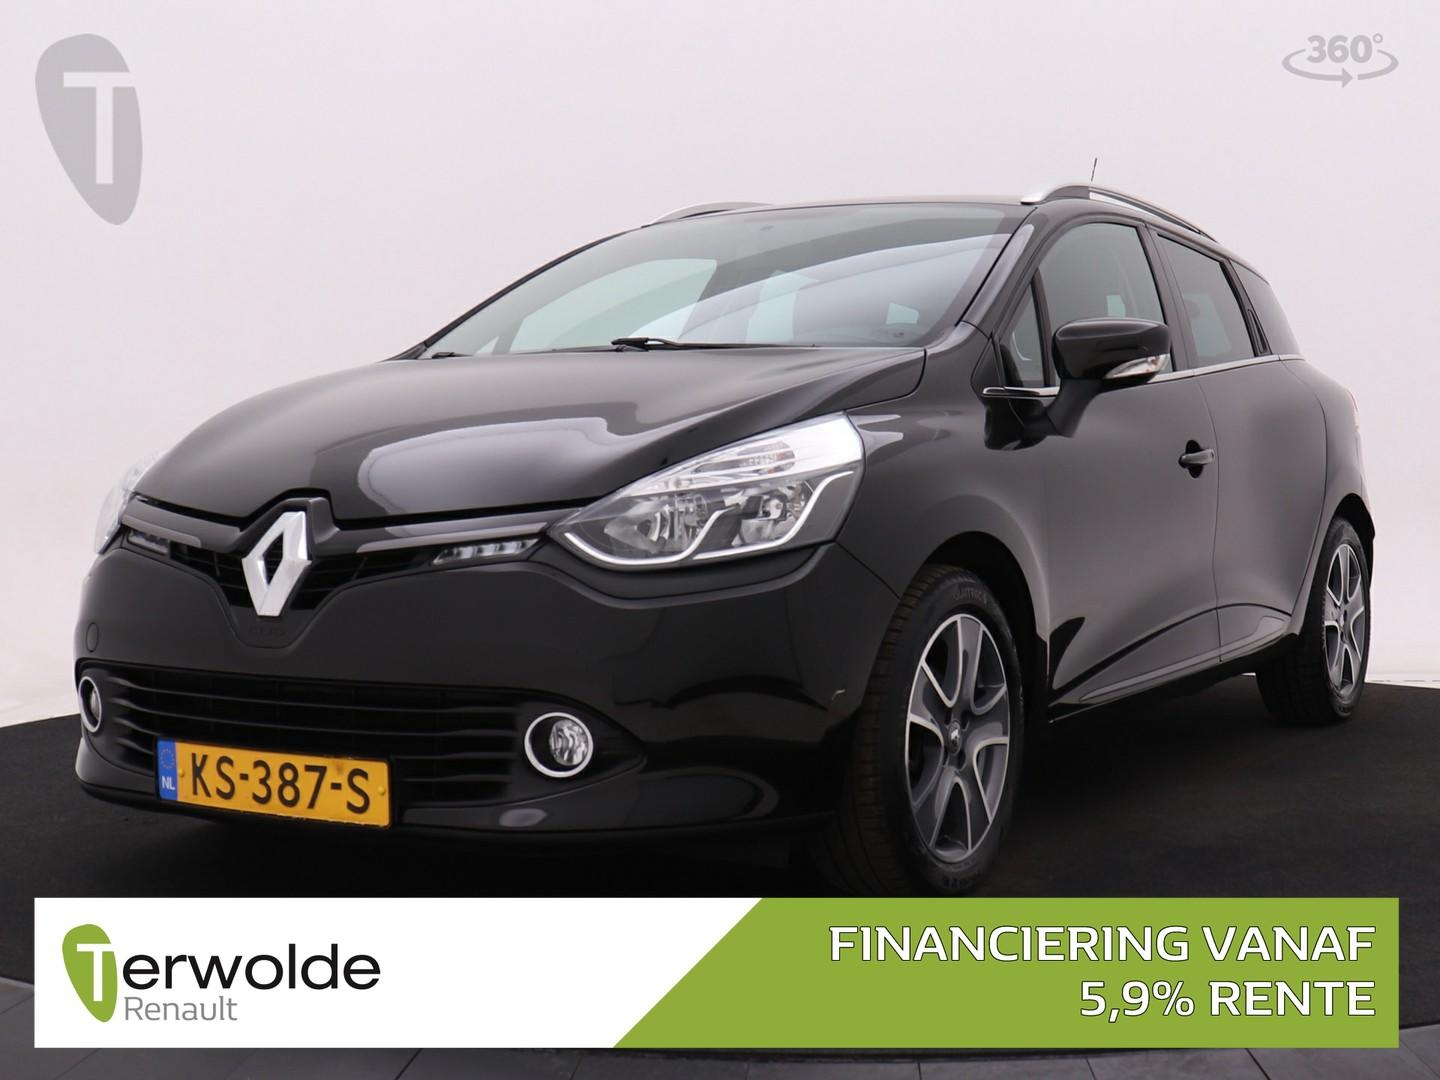 Renault Clio Estate 1.5 dci 90 eco night&day euro 6